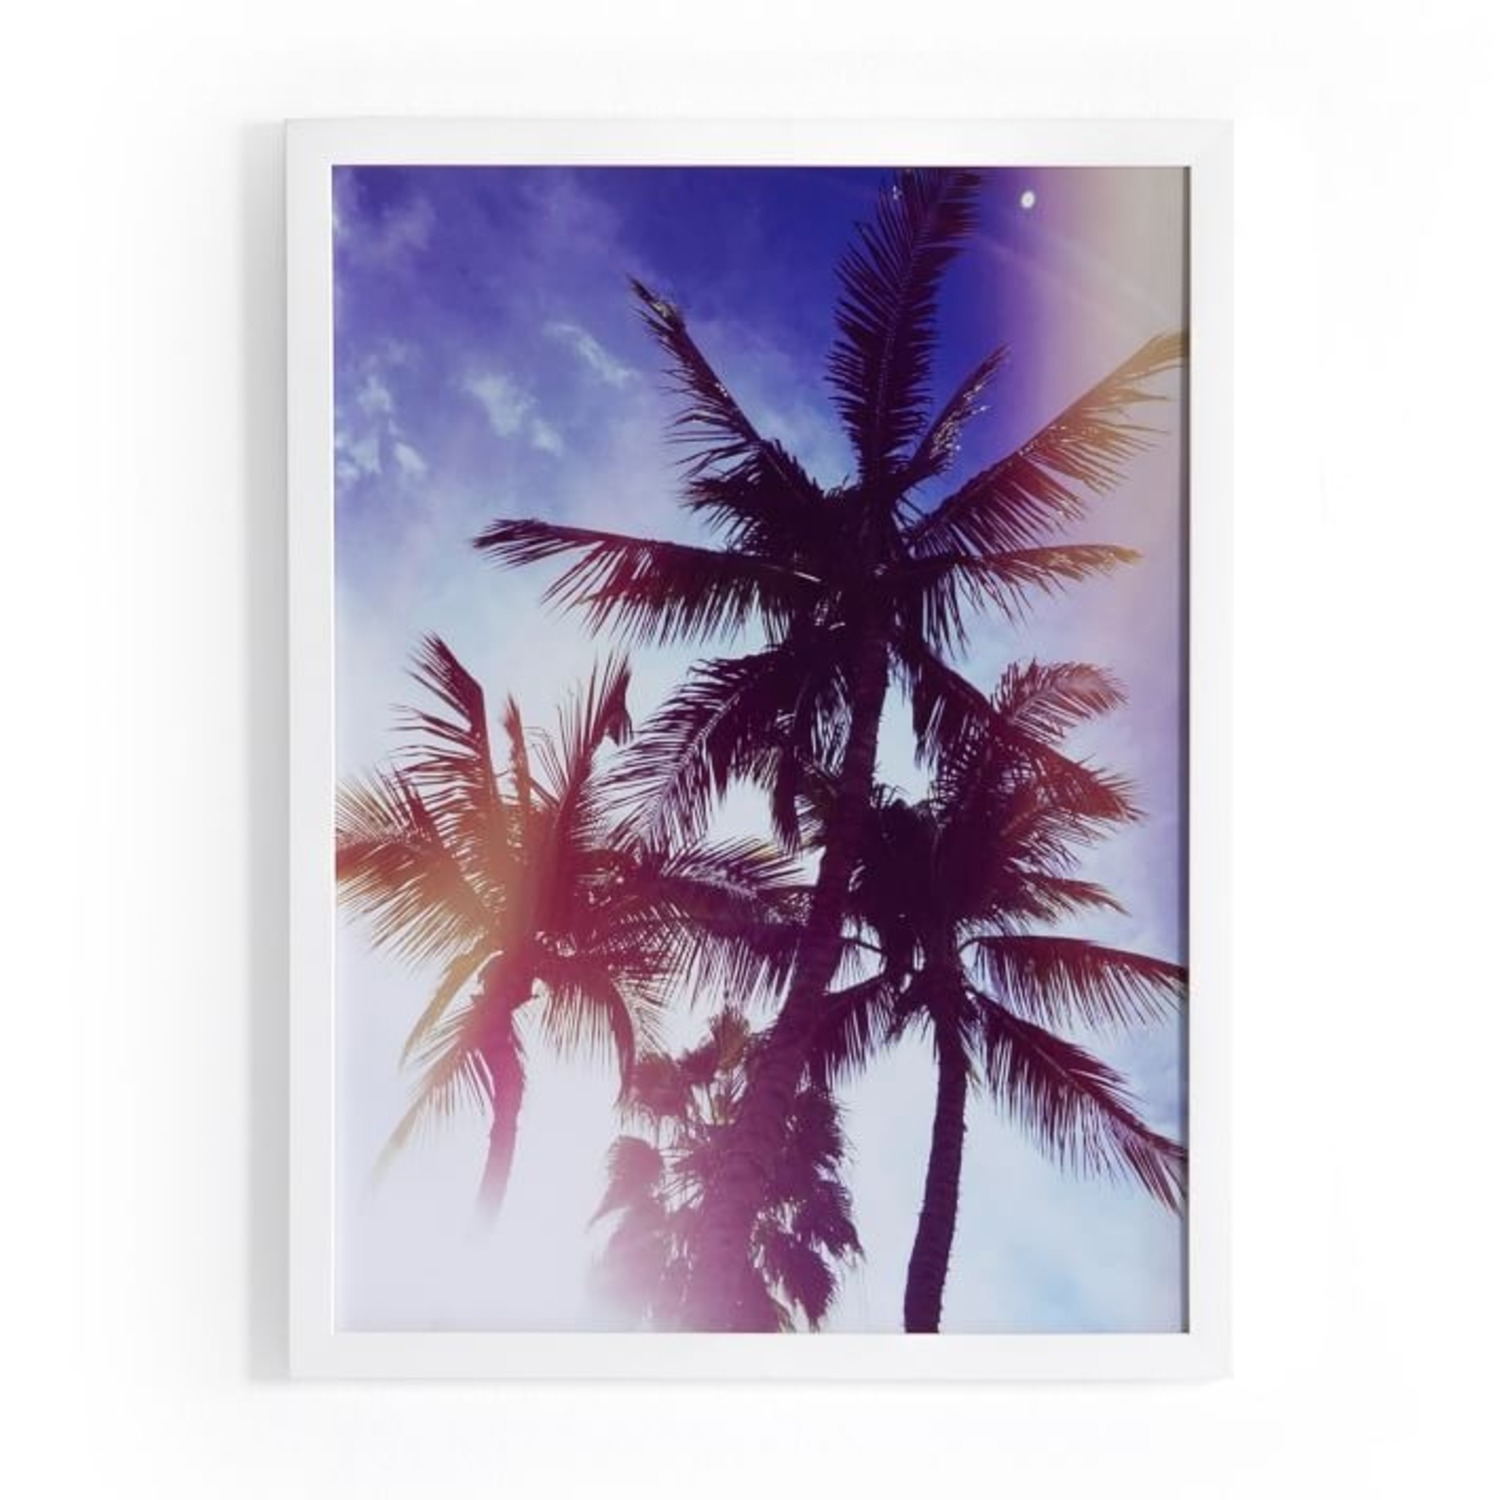 West Elm Palm Trees III by Erica Singleton - image-1